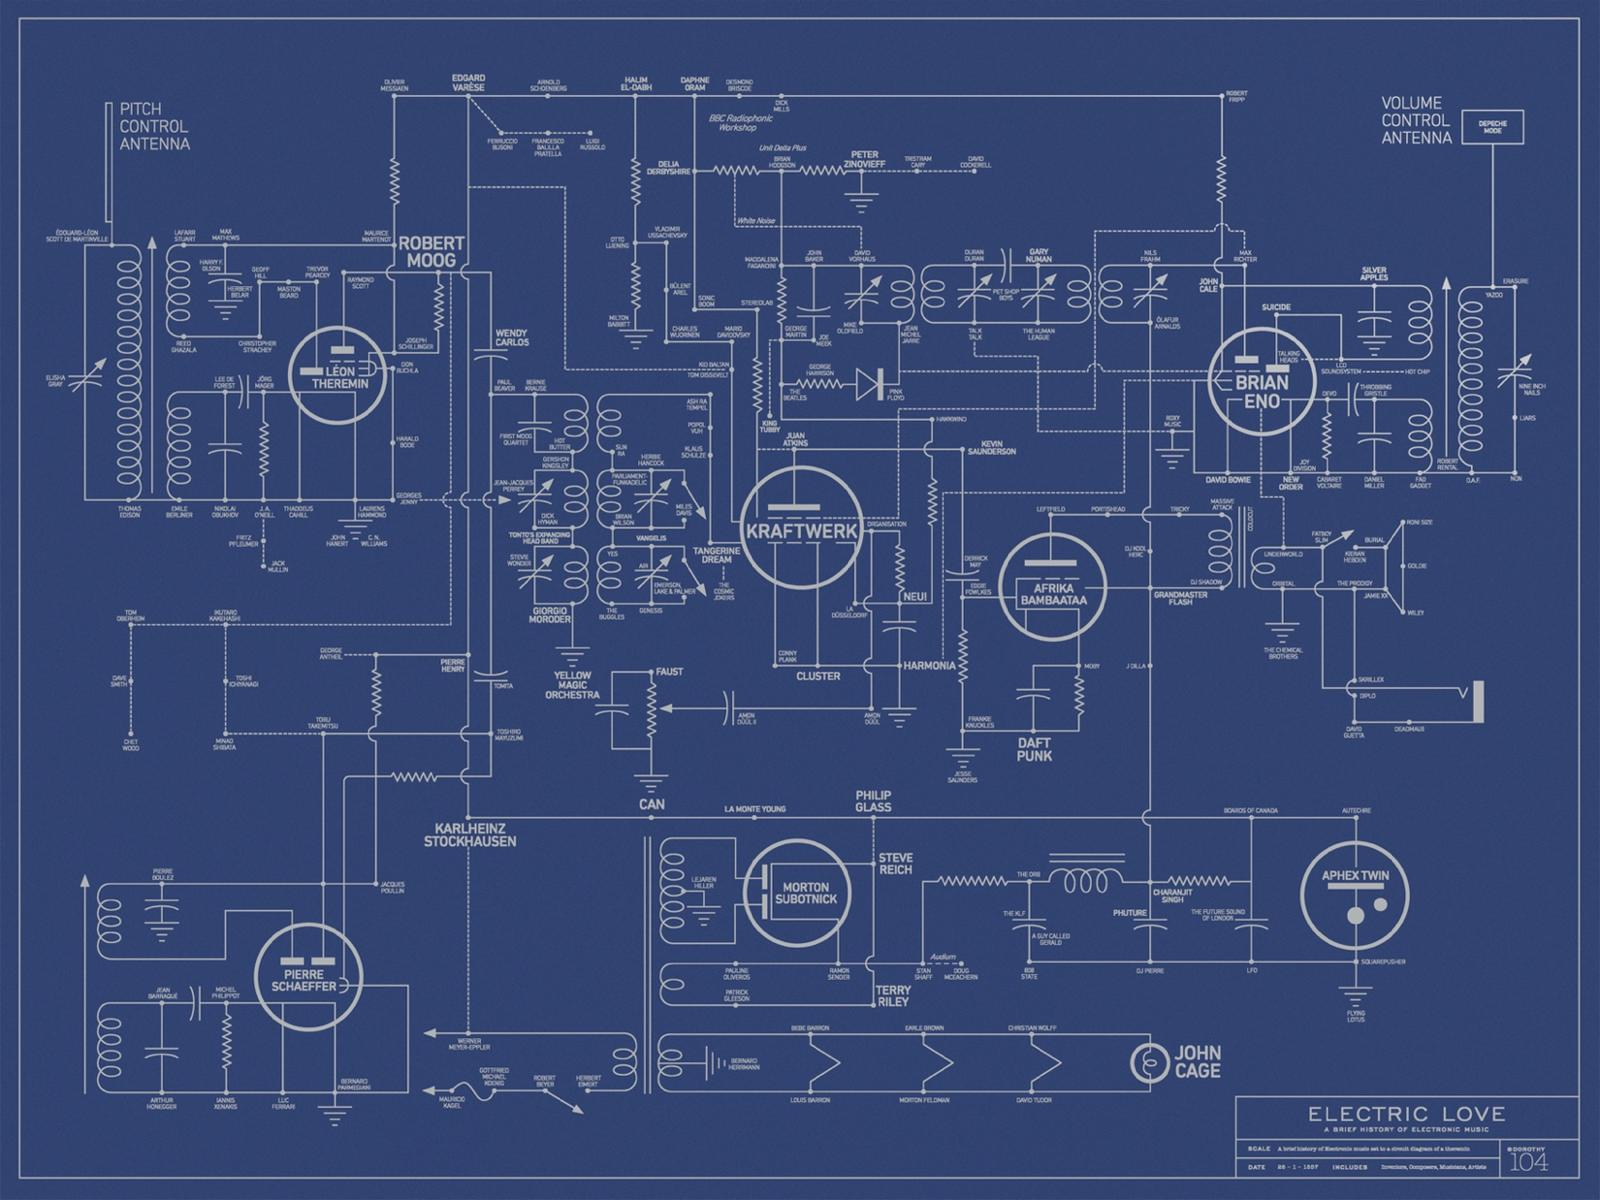 Electric Love Blueprint alt image